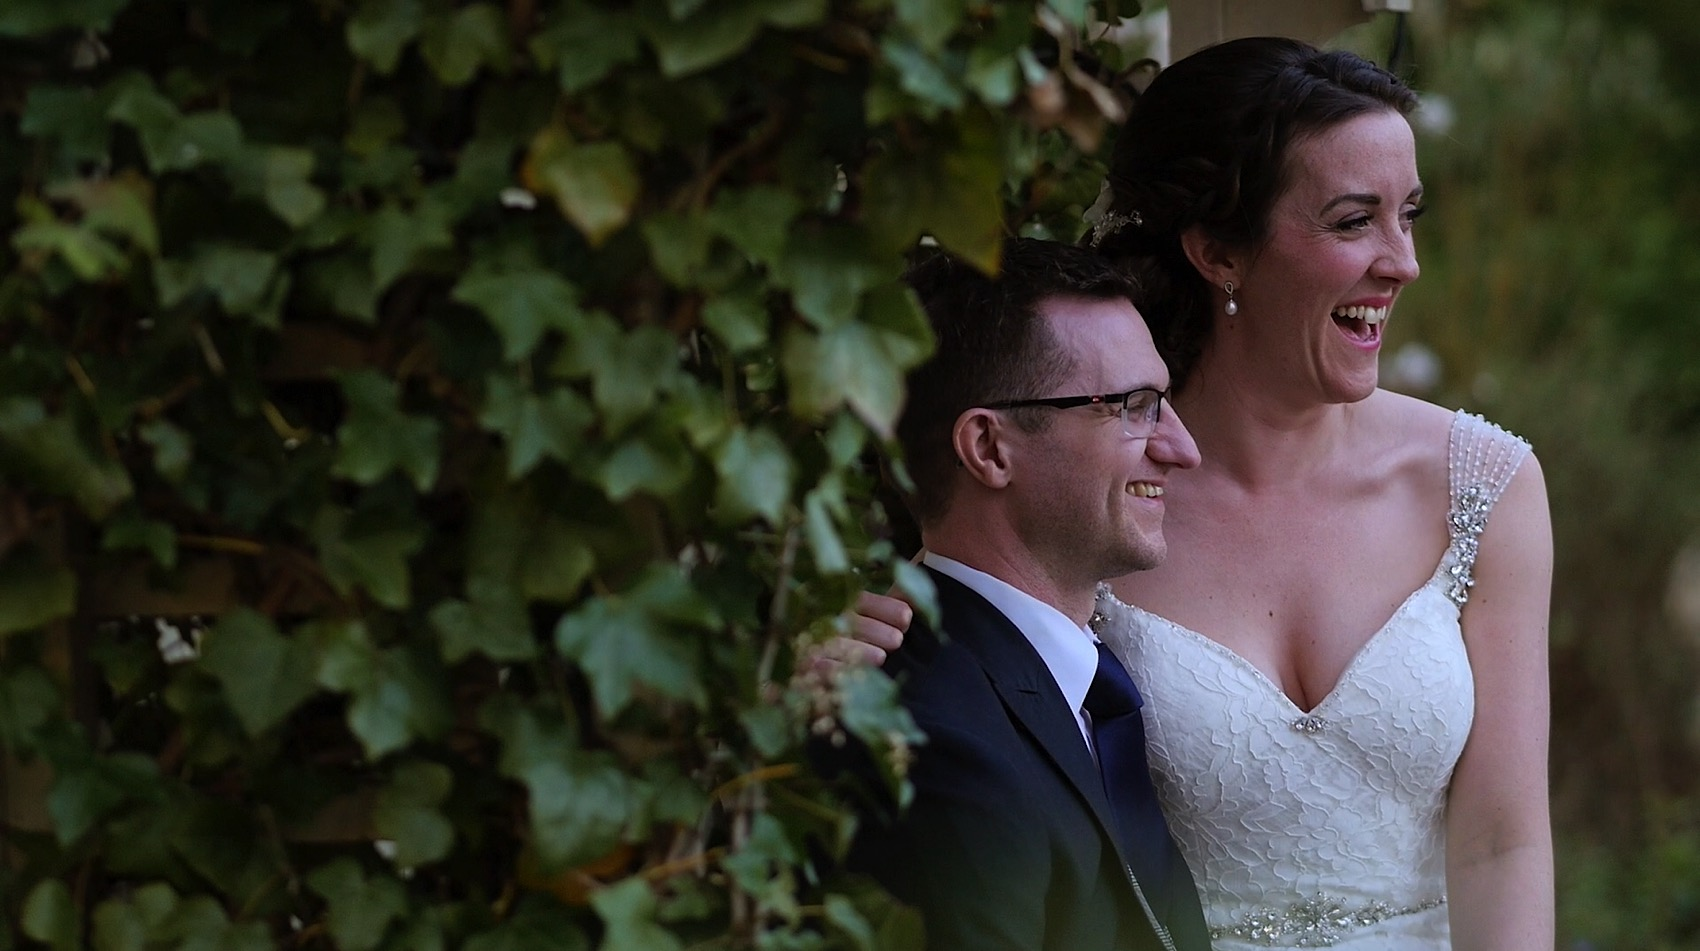 Styal Lodge Wedding Video of Tom and Laura, who married at the beautiful North West Wedding Venue in 2017.